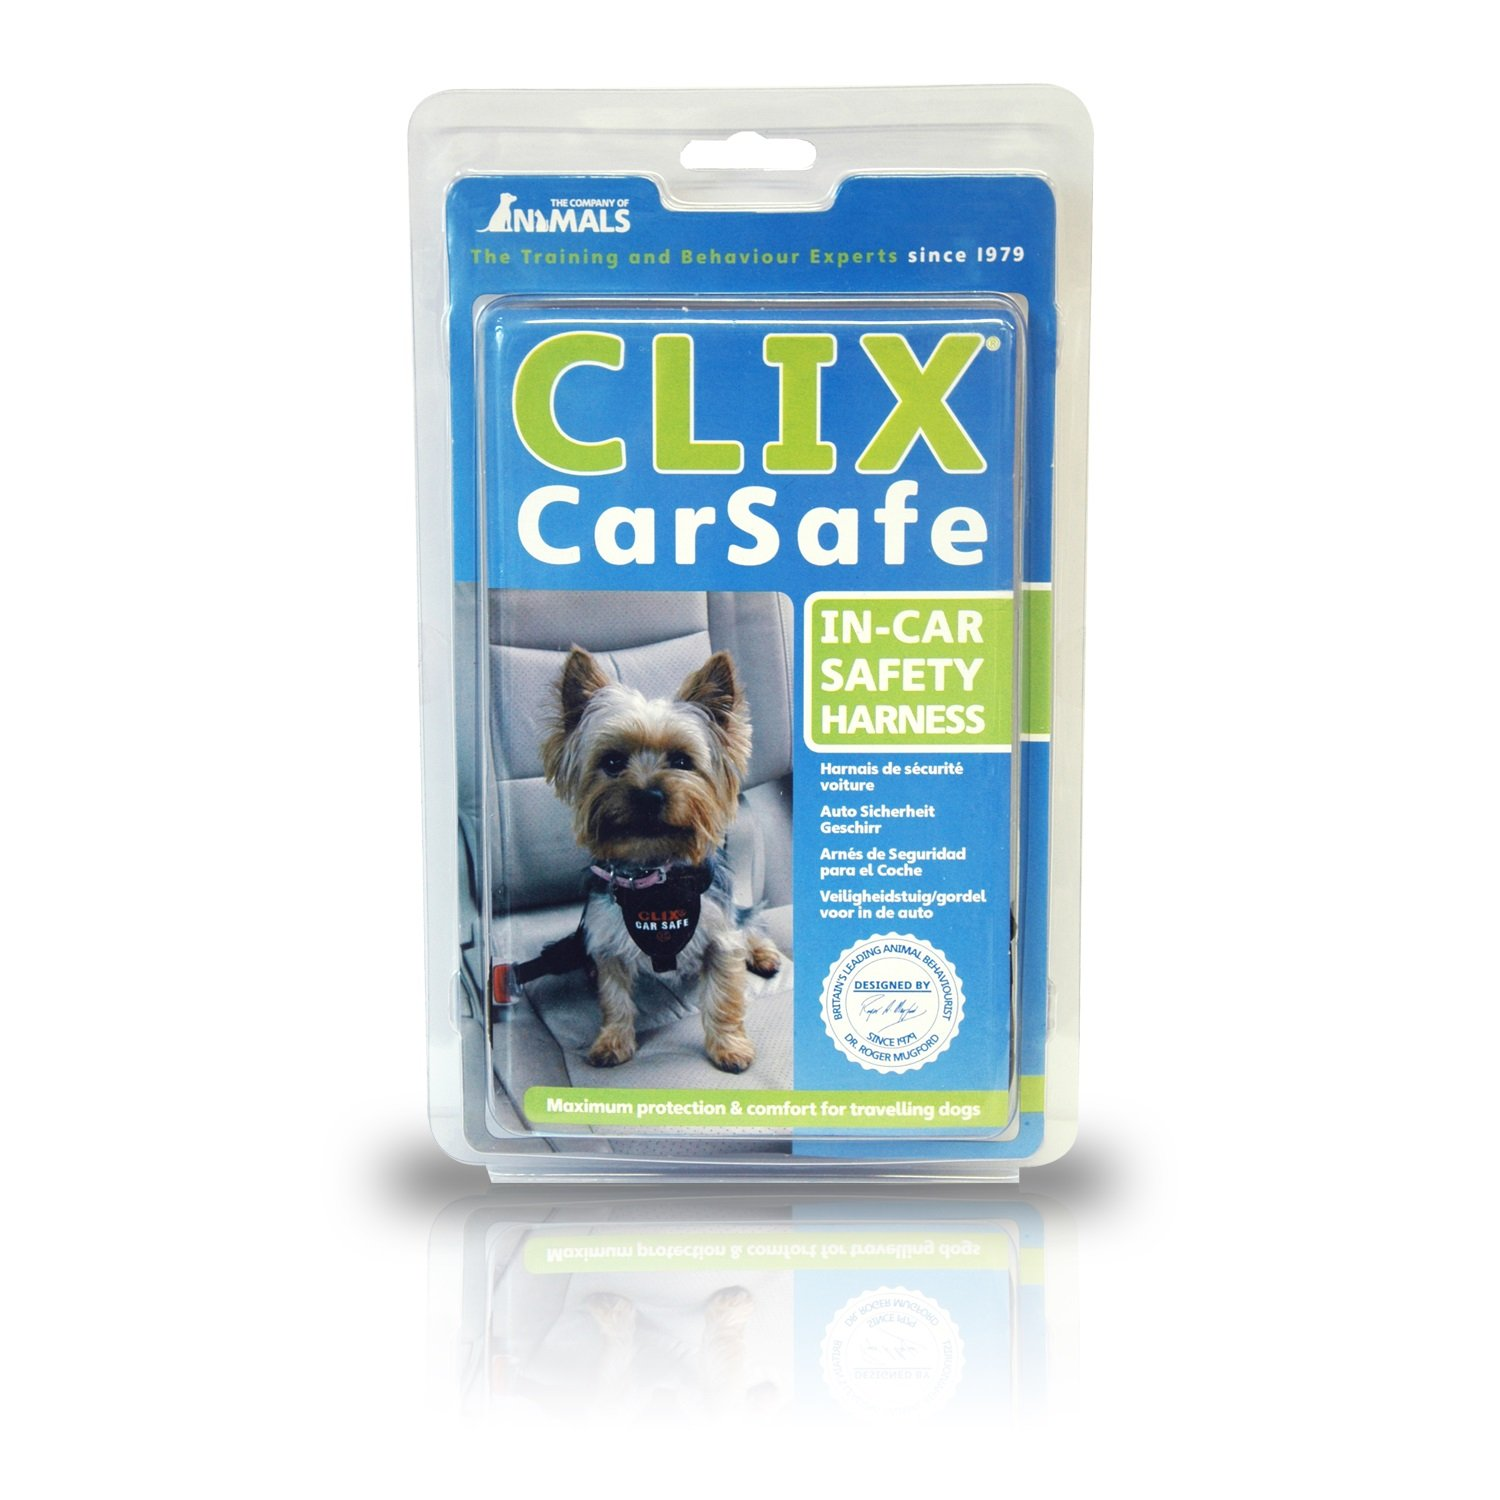 The Company of Animals - CLIX CARSAFE Dog Harness - Multi-Purpose Car Seat Belt and Walking Harness - Easy, Adjustable, Secure and Safe - X-Small by The Company of Animals (Image #1)